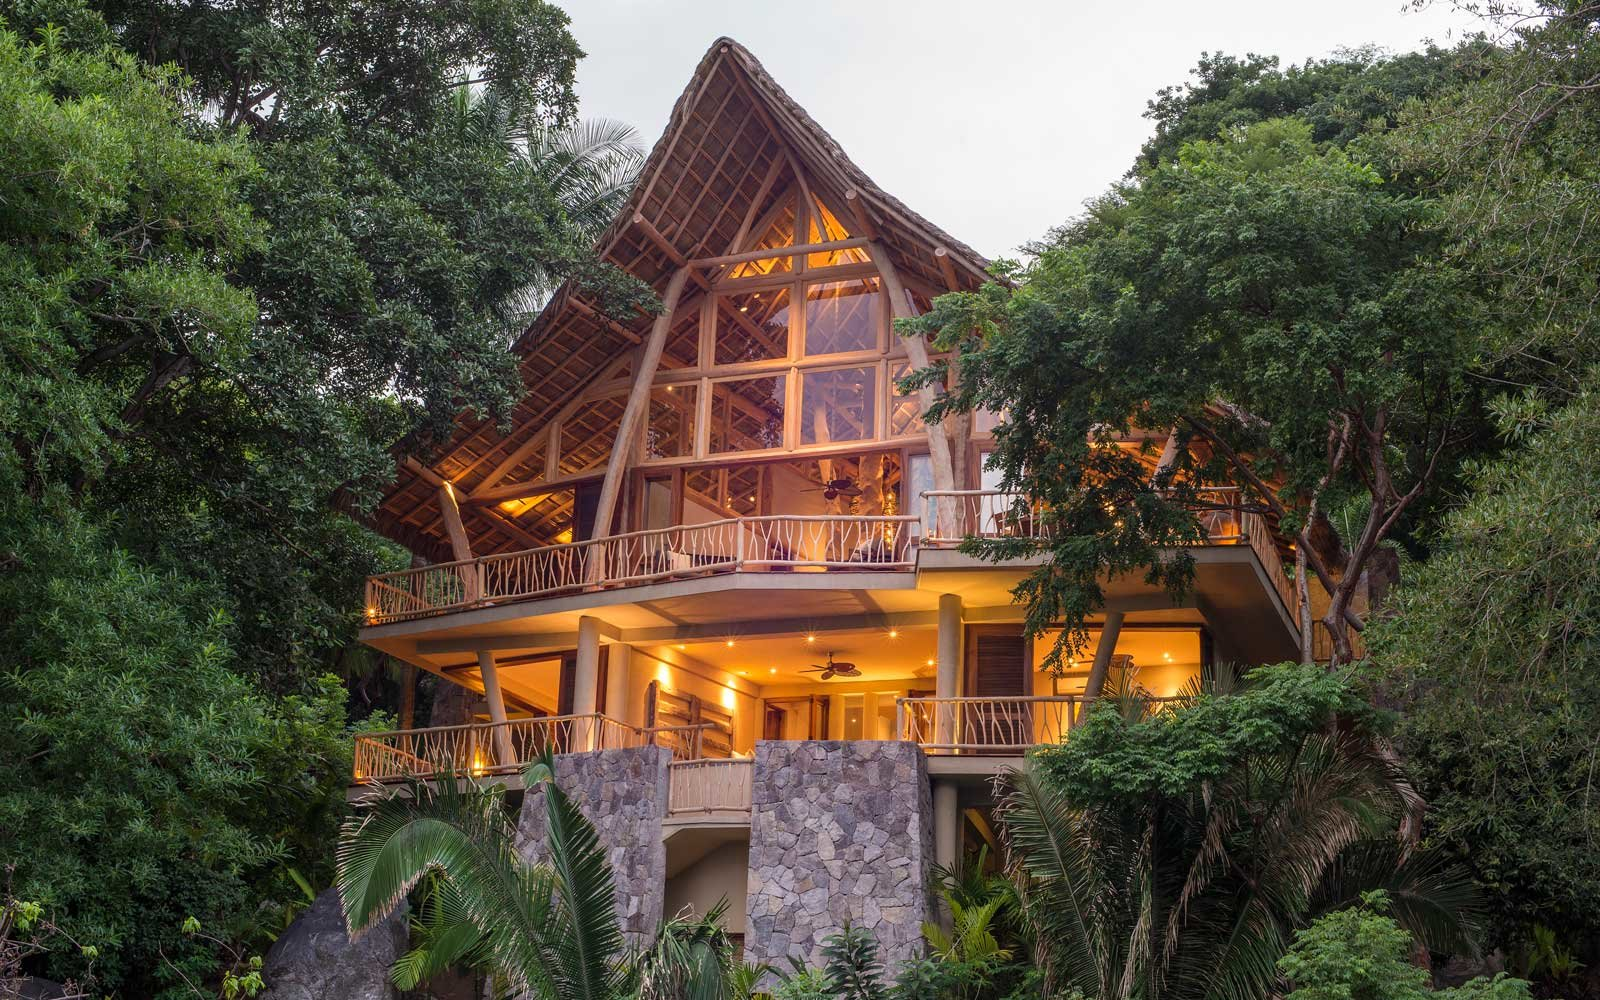 Treehouse Pictures This Treehouse In Mexico Is The Vacation Spot Of Your Dreams